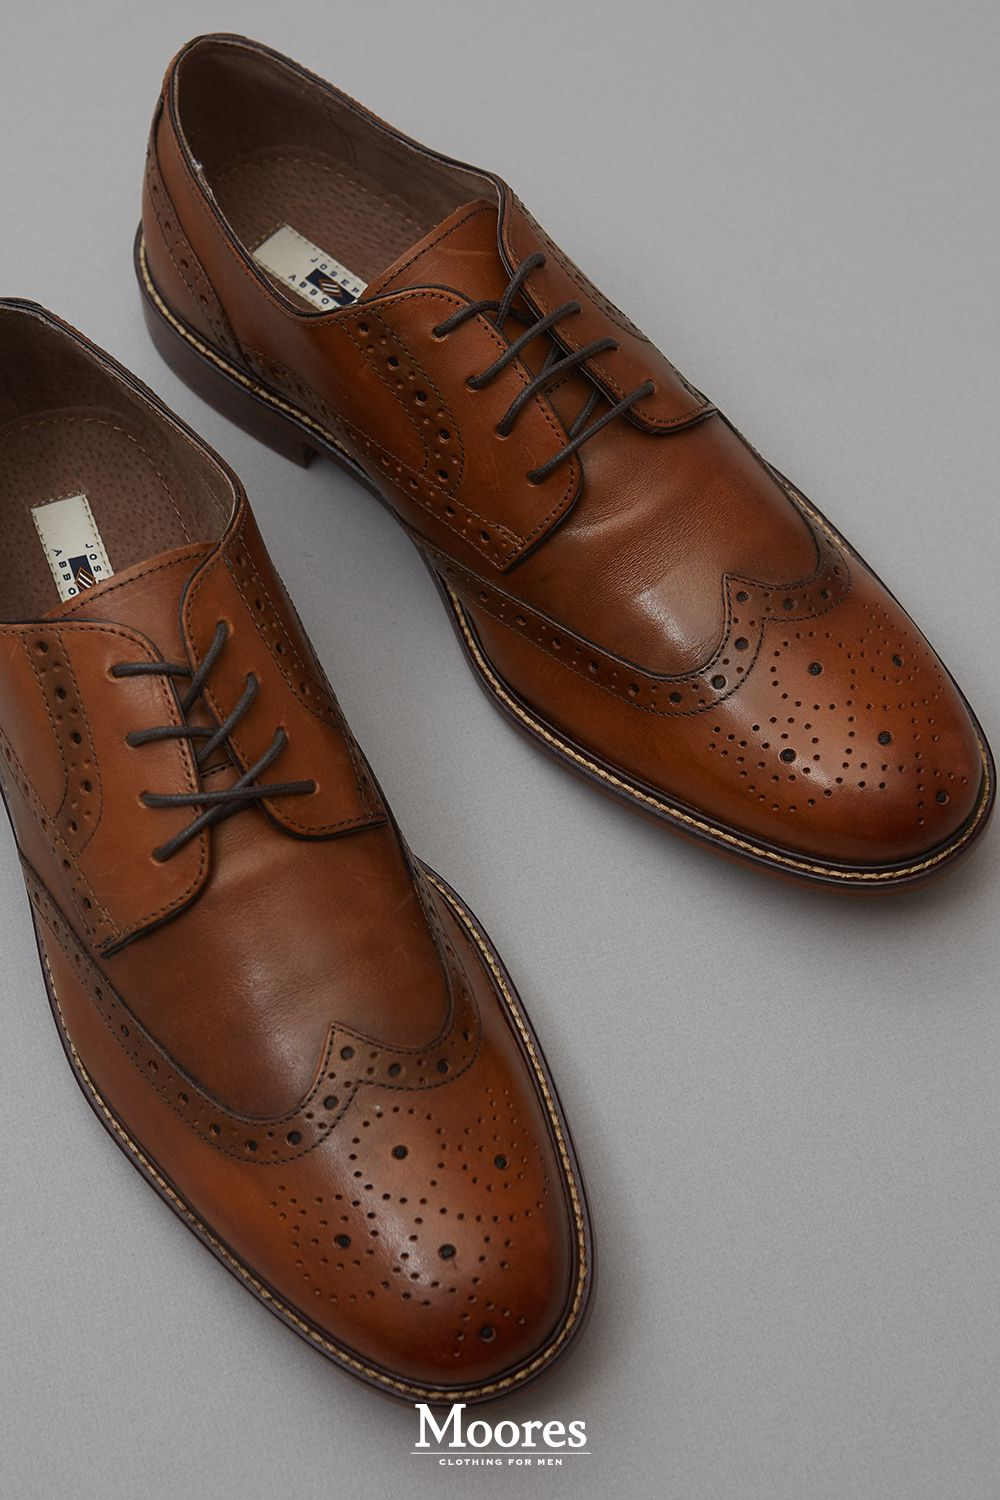 922e646b362 Every wardrobe needs a pair of #JosephAbboud tan wingtips. Get yours ...